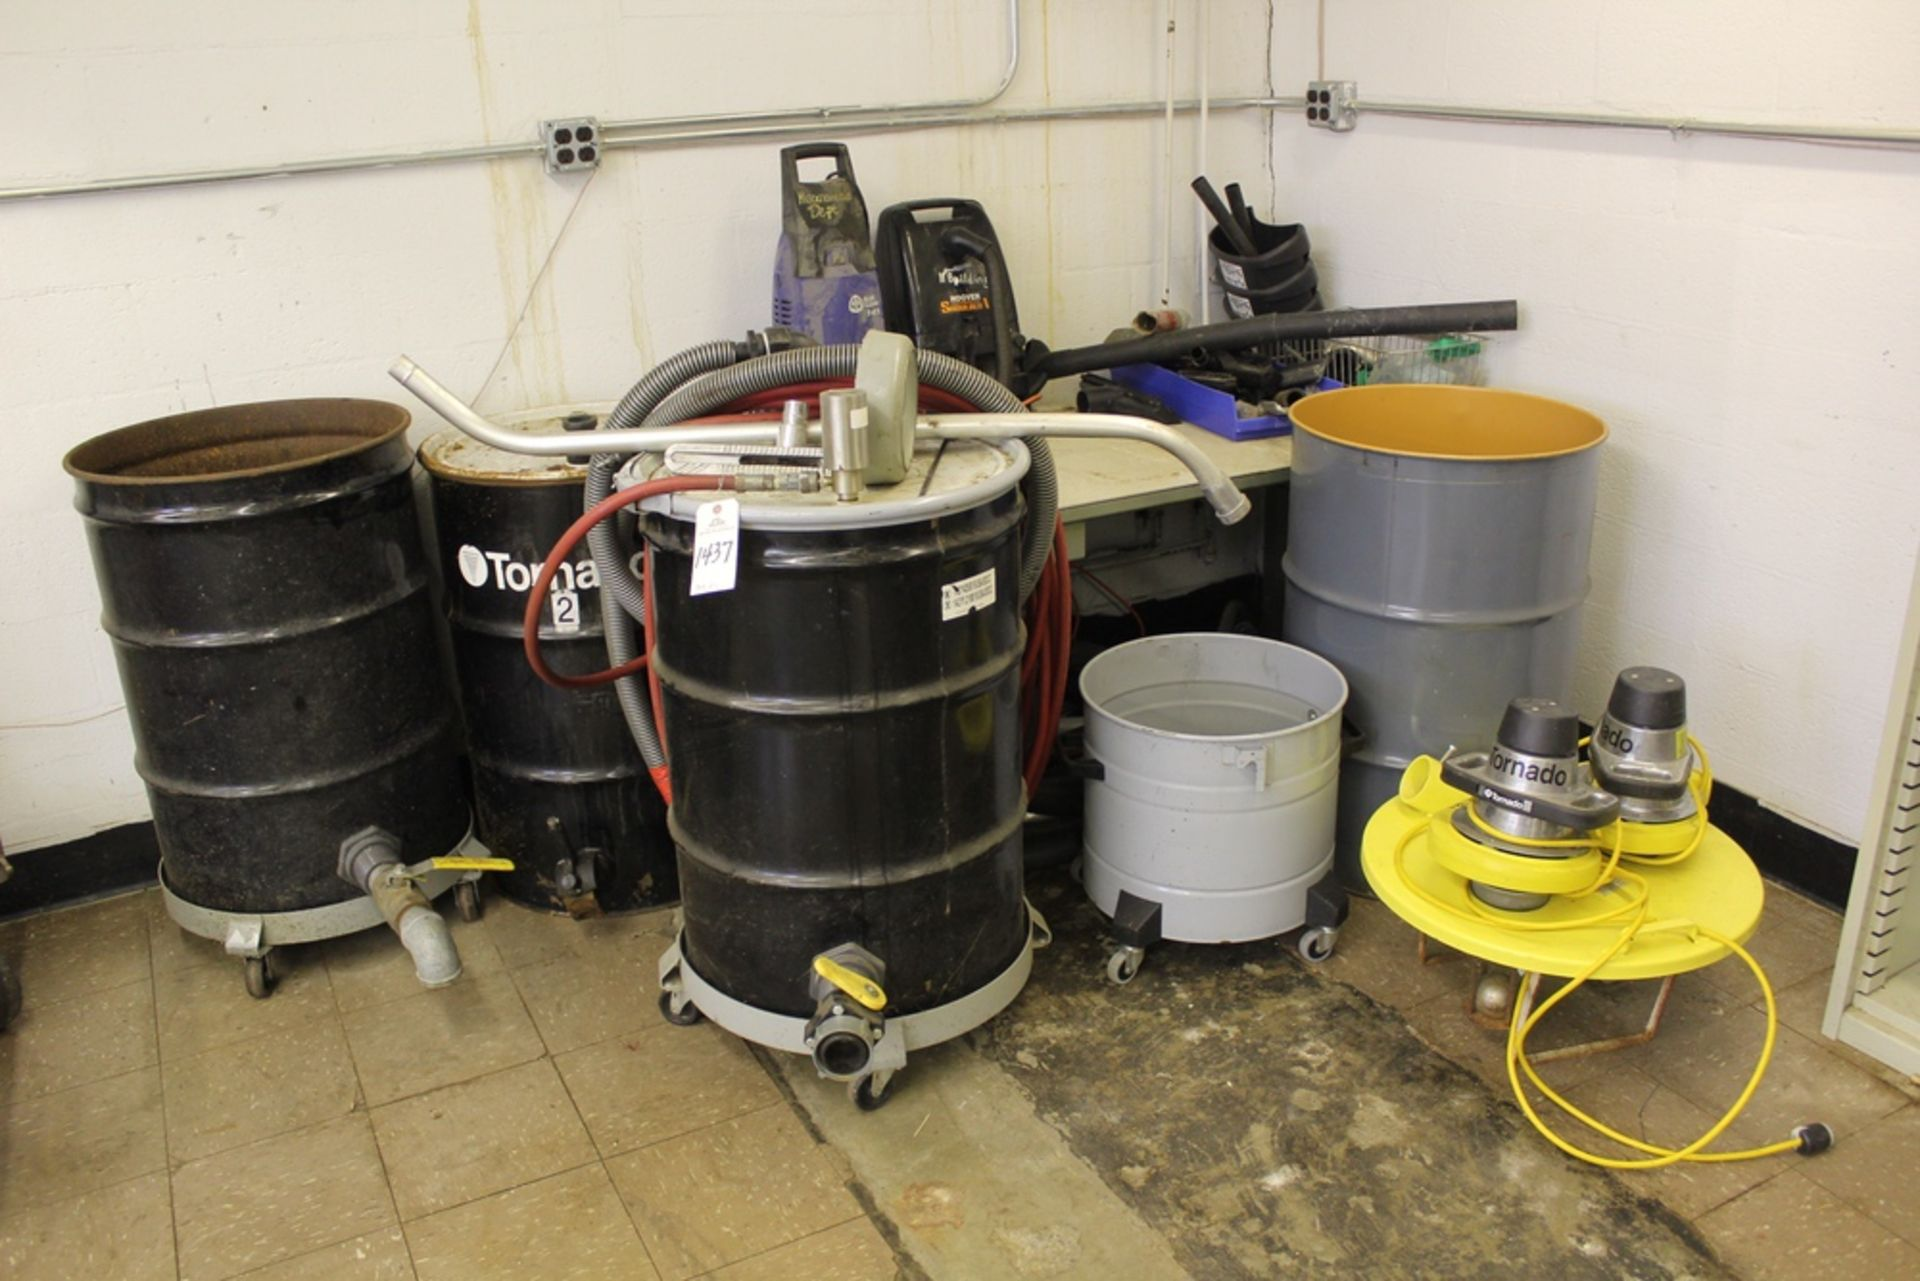 Lot 1437 - Lot of Sanitation Supplies | Rig Fee: Hand Carry or Contact Rigger